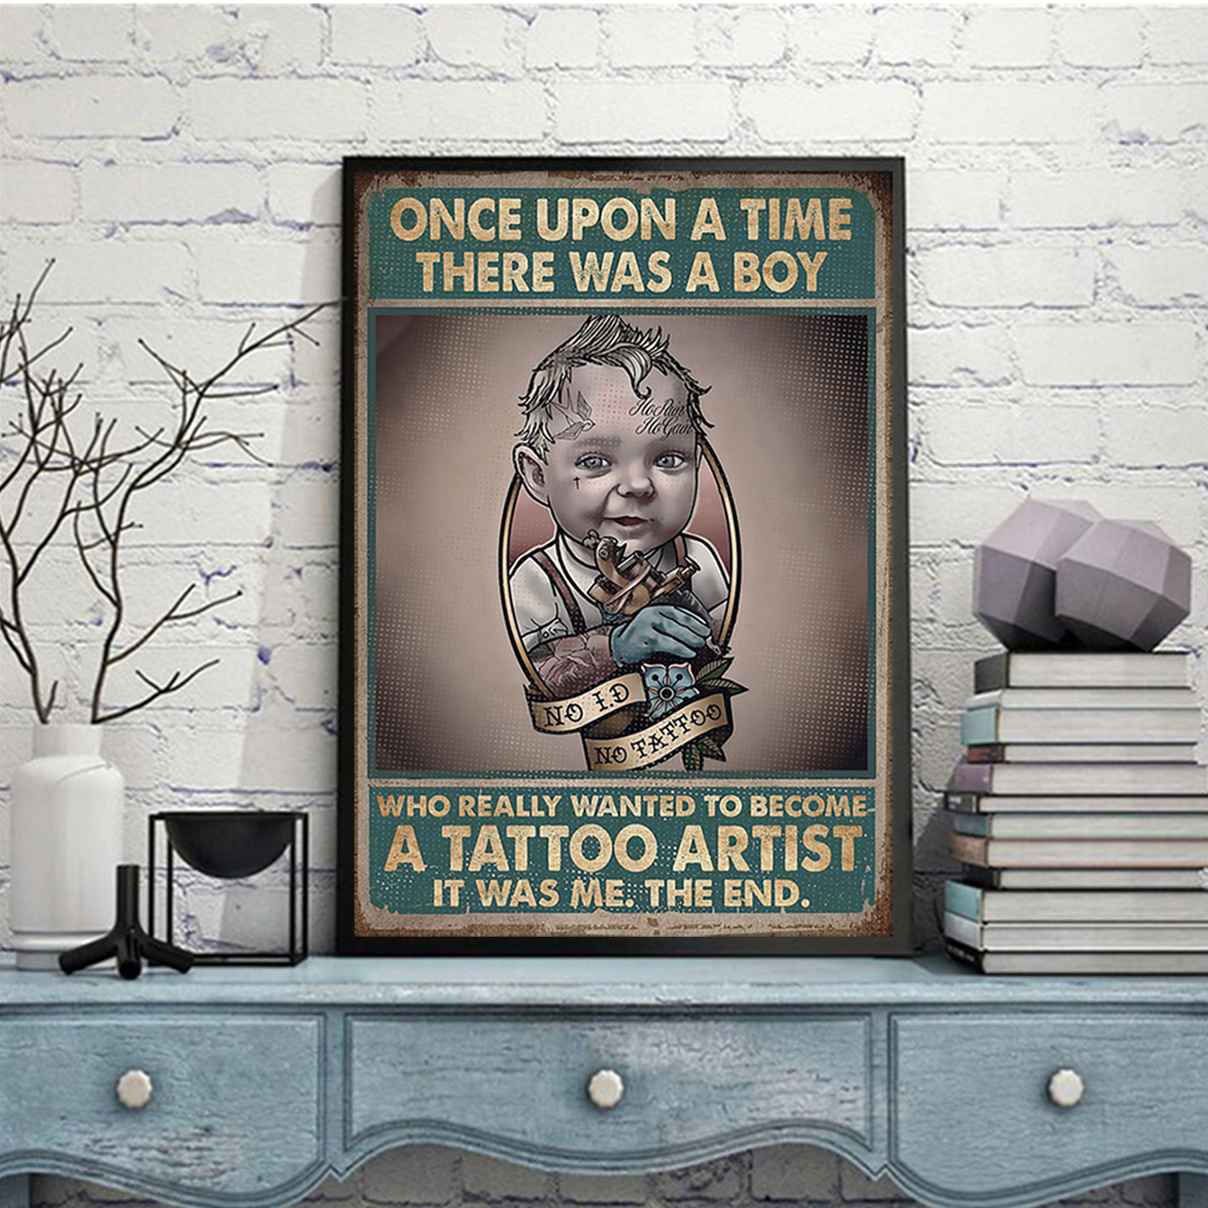 Once upon a time there was a boy who really wanted to become a tattoo artist poster A1